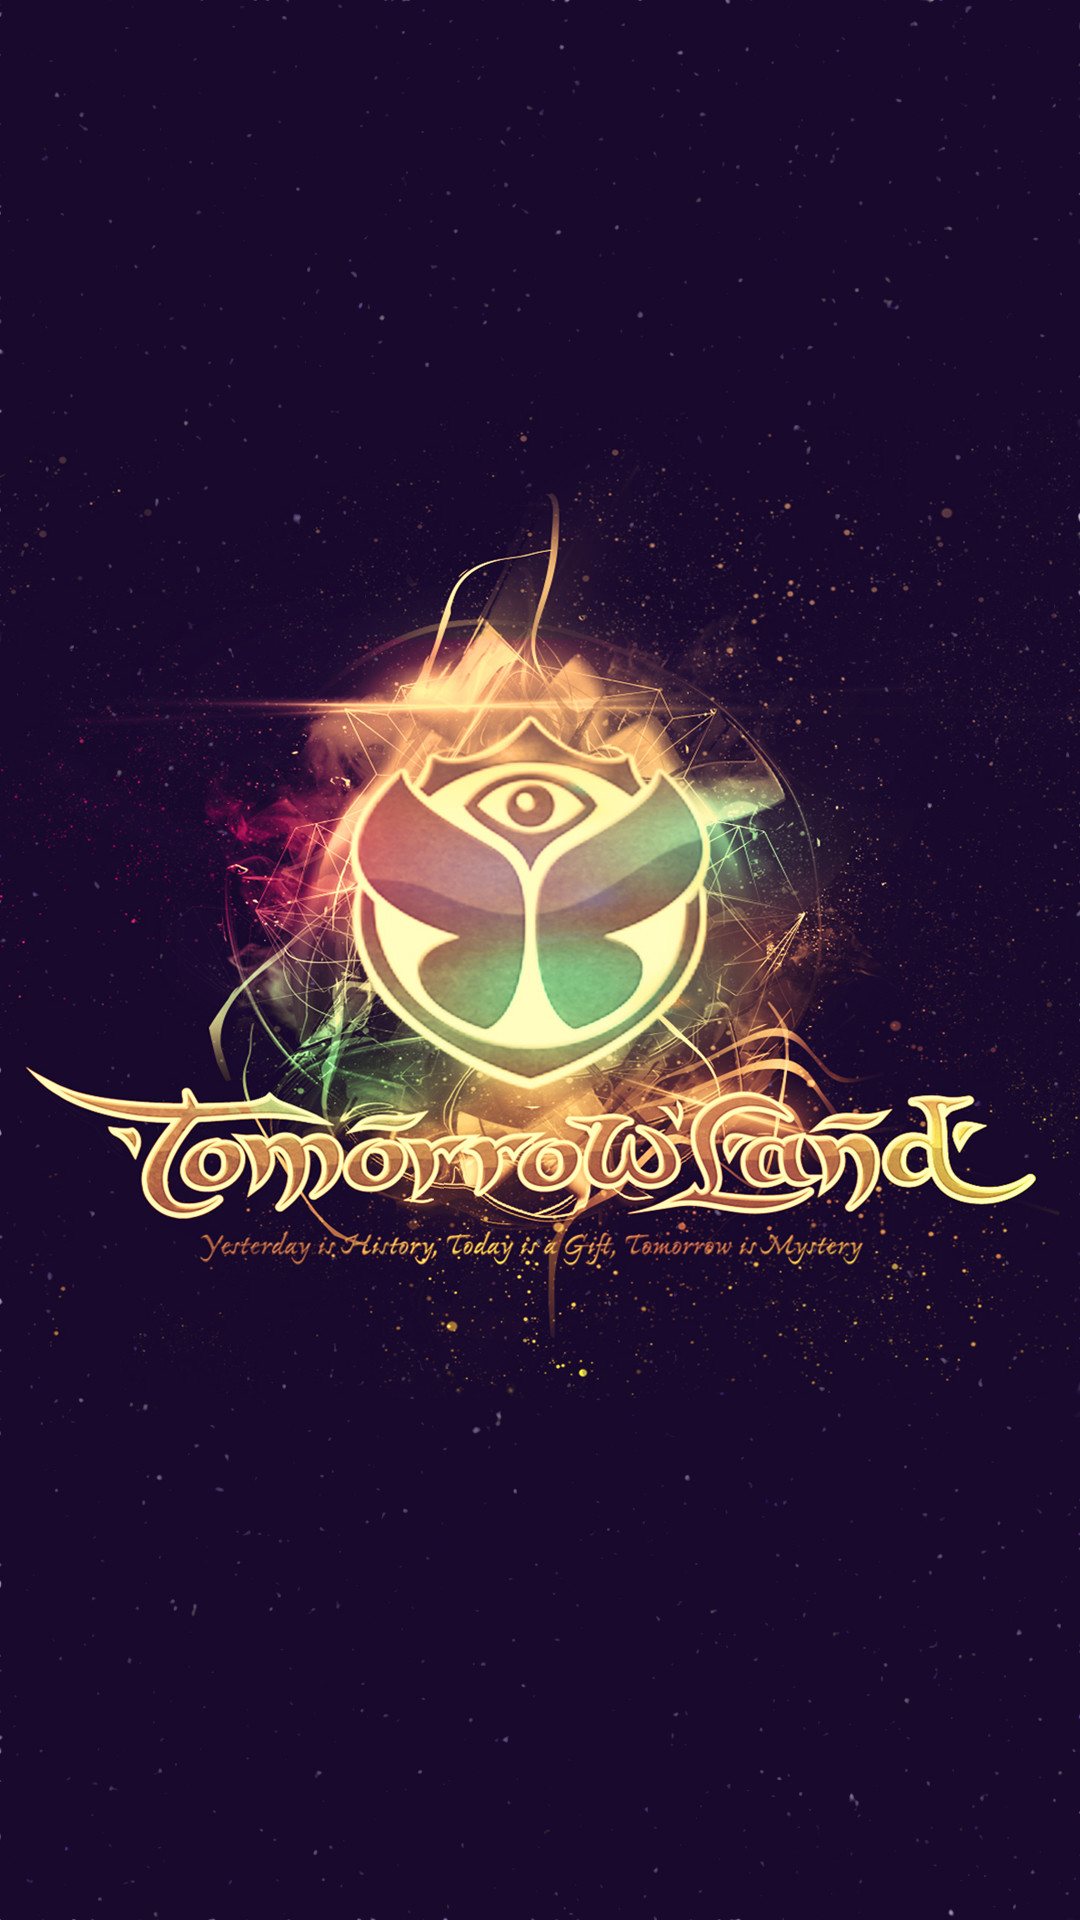 1080x1920 #Tomorrowland 2014 Electronic Music Festival Logo #Android #Wallpaper